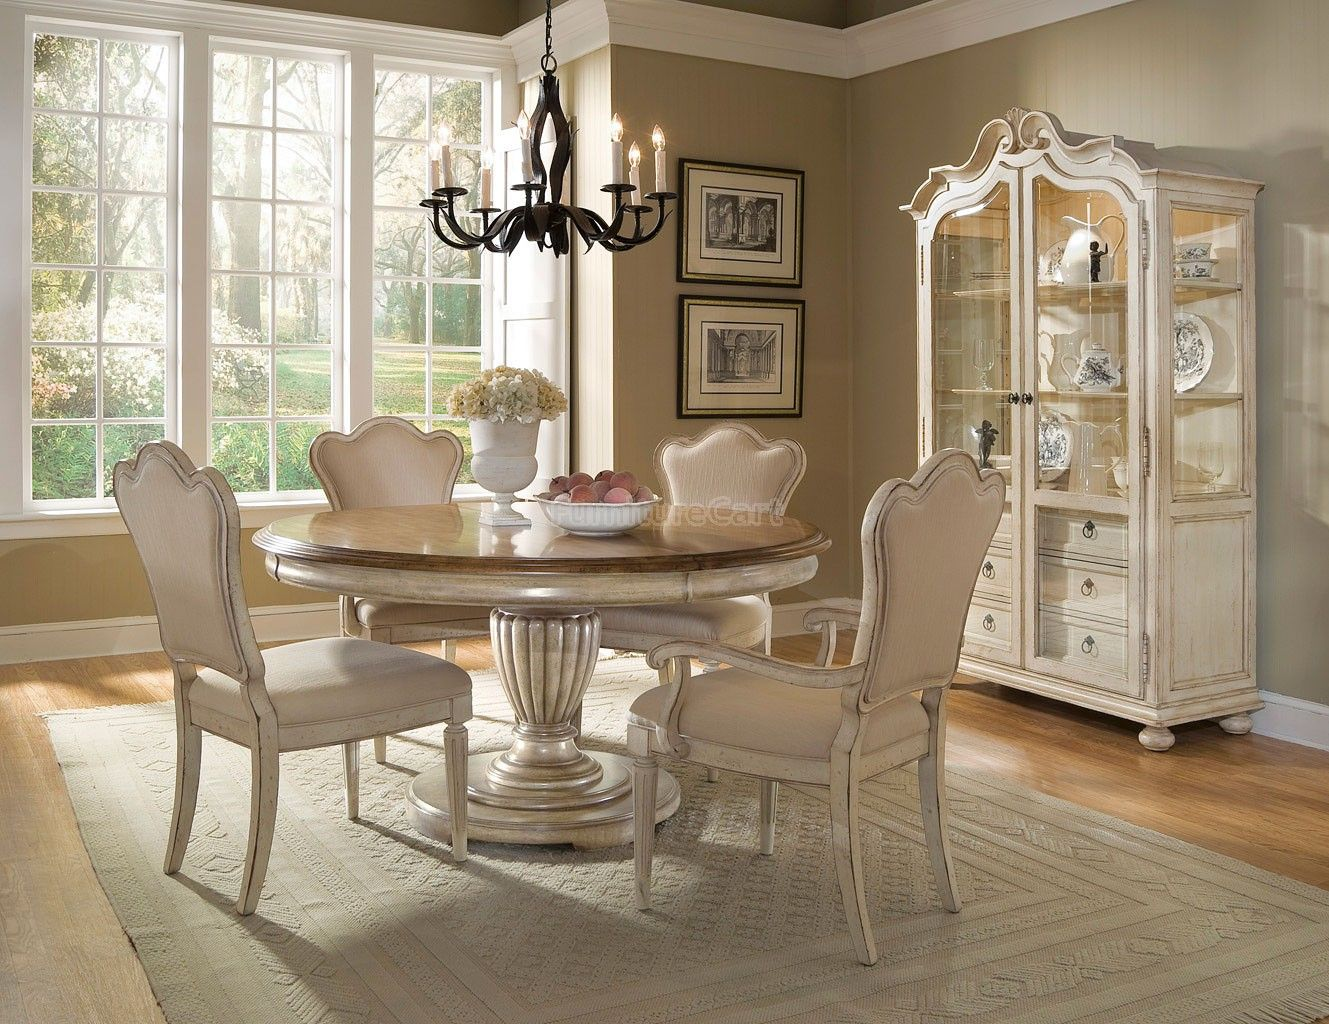 French Provincial Dining Room Furniture What Makes It Special French Provin French Country Dining Room French Country Dining Room Set Shabby Chic Dining Room